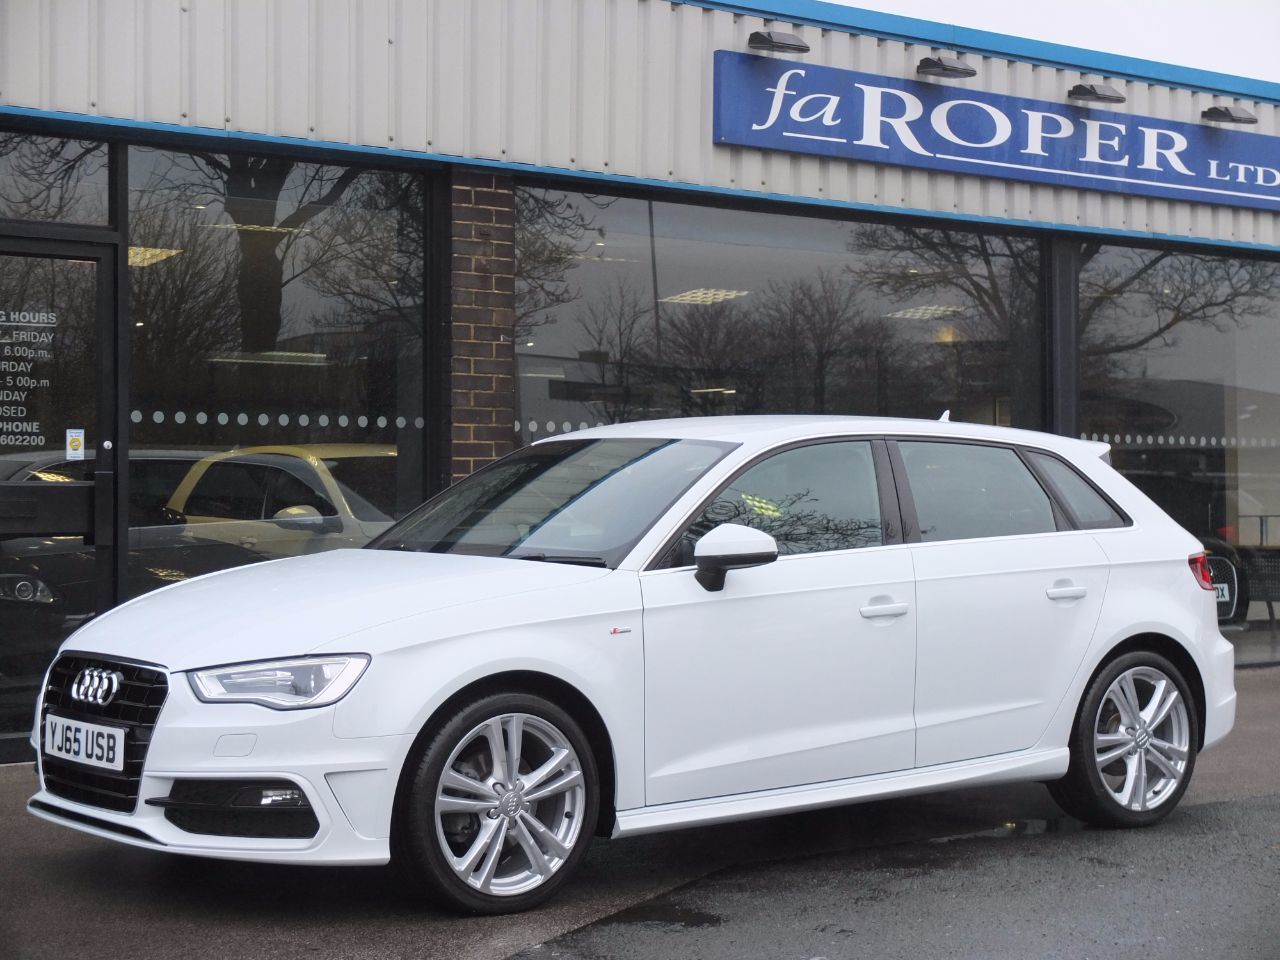 used audi a3 sportback 2 0 tdi s line 5 door s tronic 150ps navigation for sale in bradford. Black Bedroom Furniture Sets. Home Design Ideas